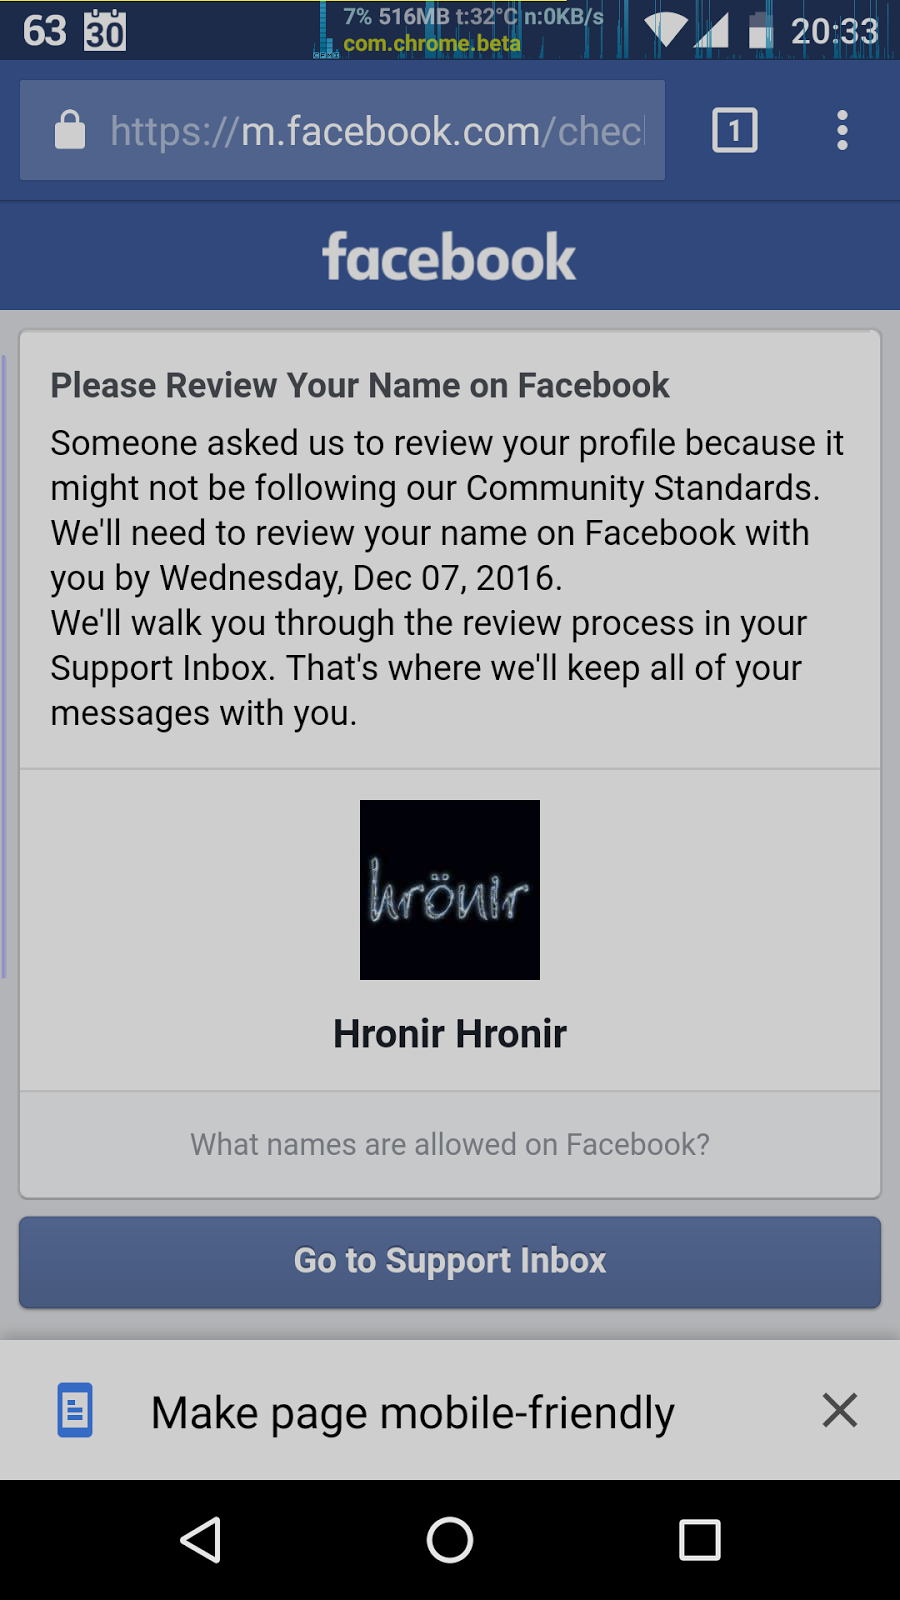 Facebook bans hronir